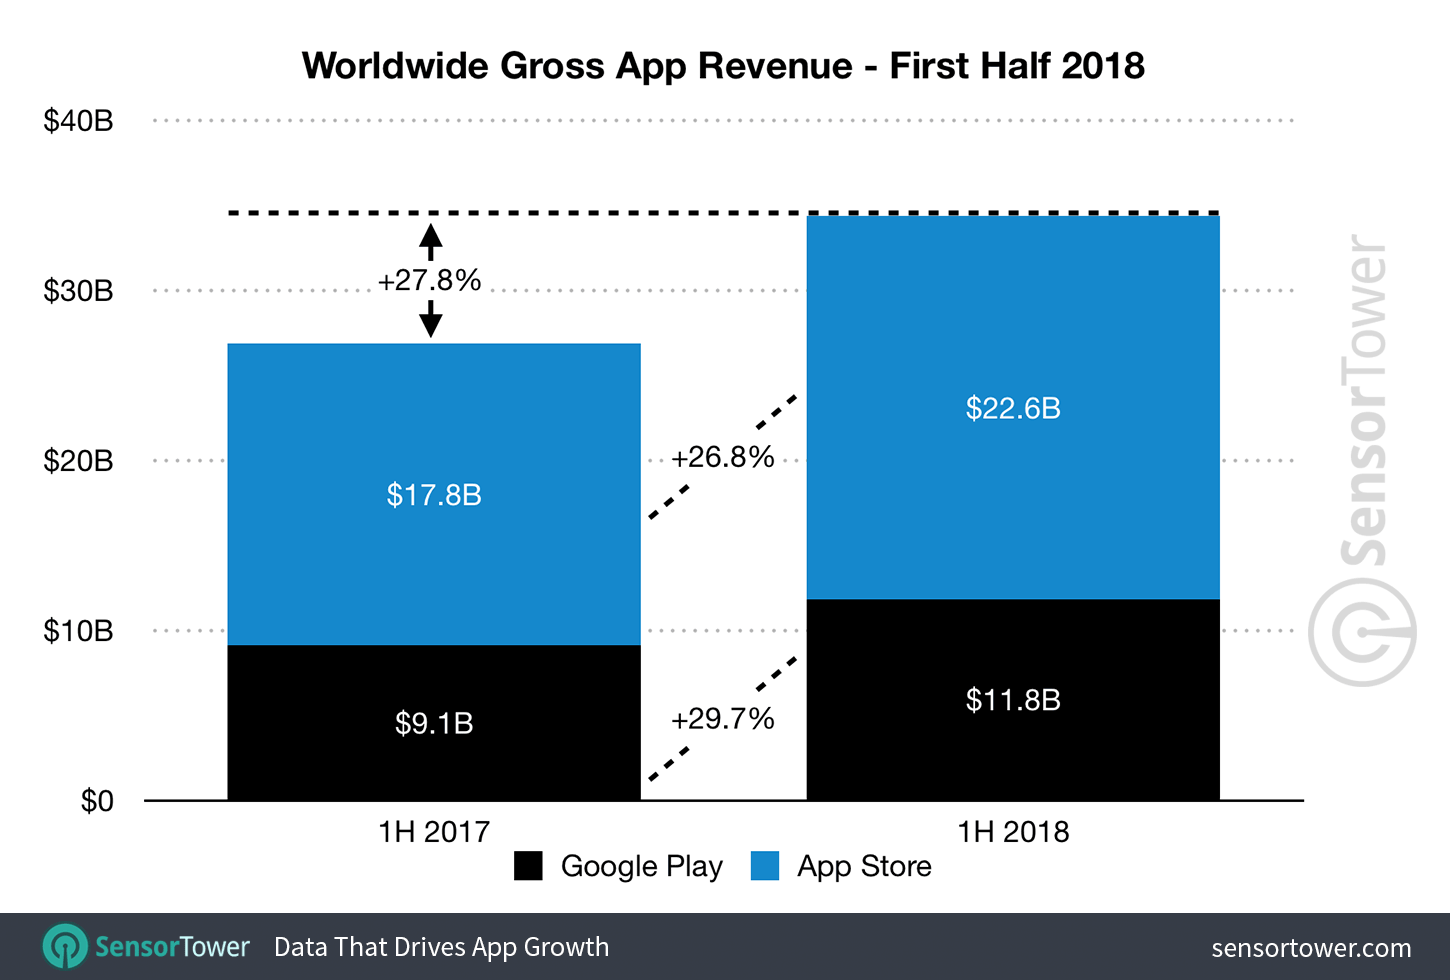 1H 2018 Mobile App Revenue